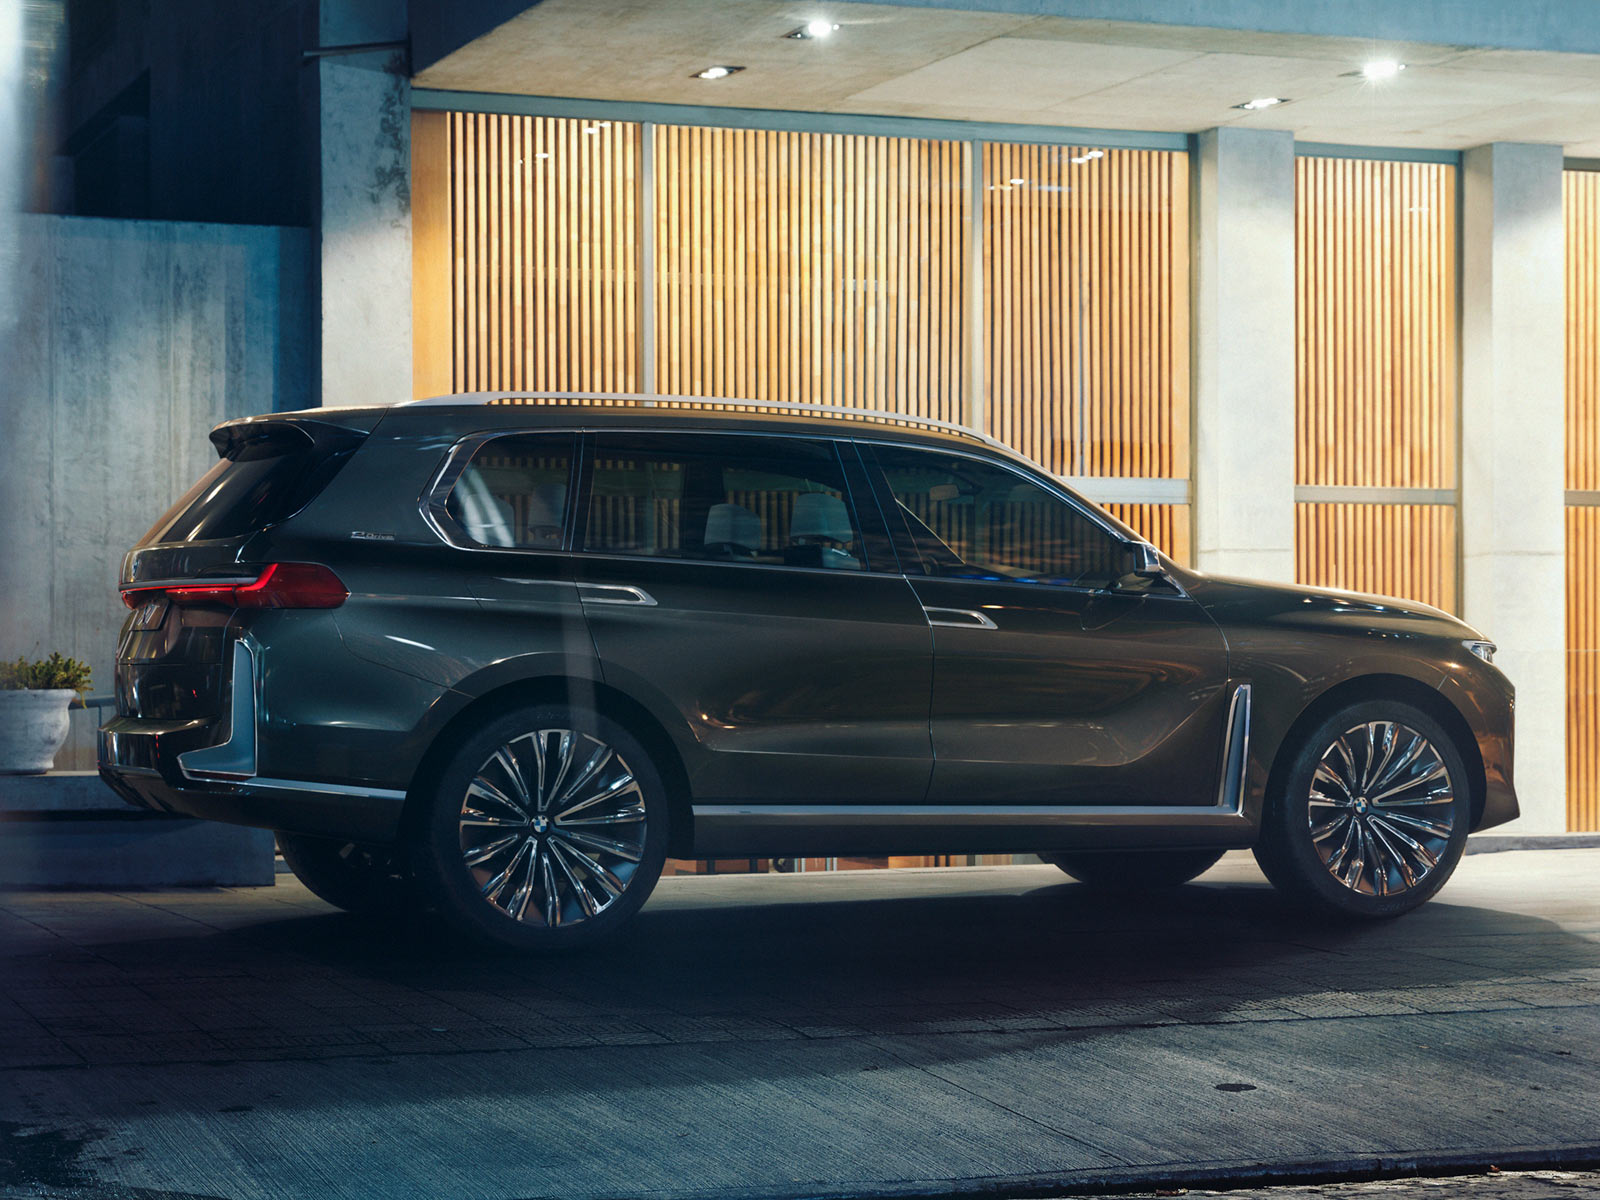 bmw x7 revealed as iperformance concept ahead of frankfurt autoevolution. Black Bedroom Furniture Sets. Home Design Ideas